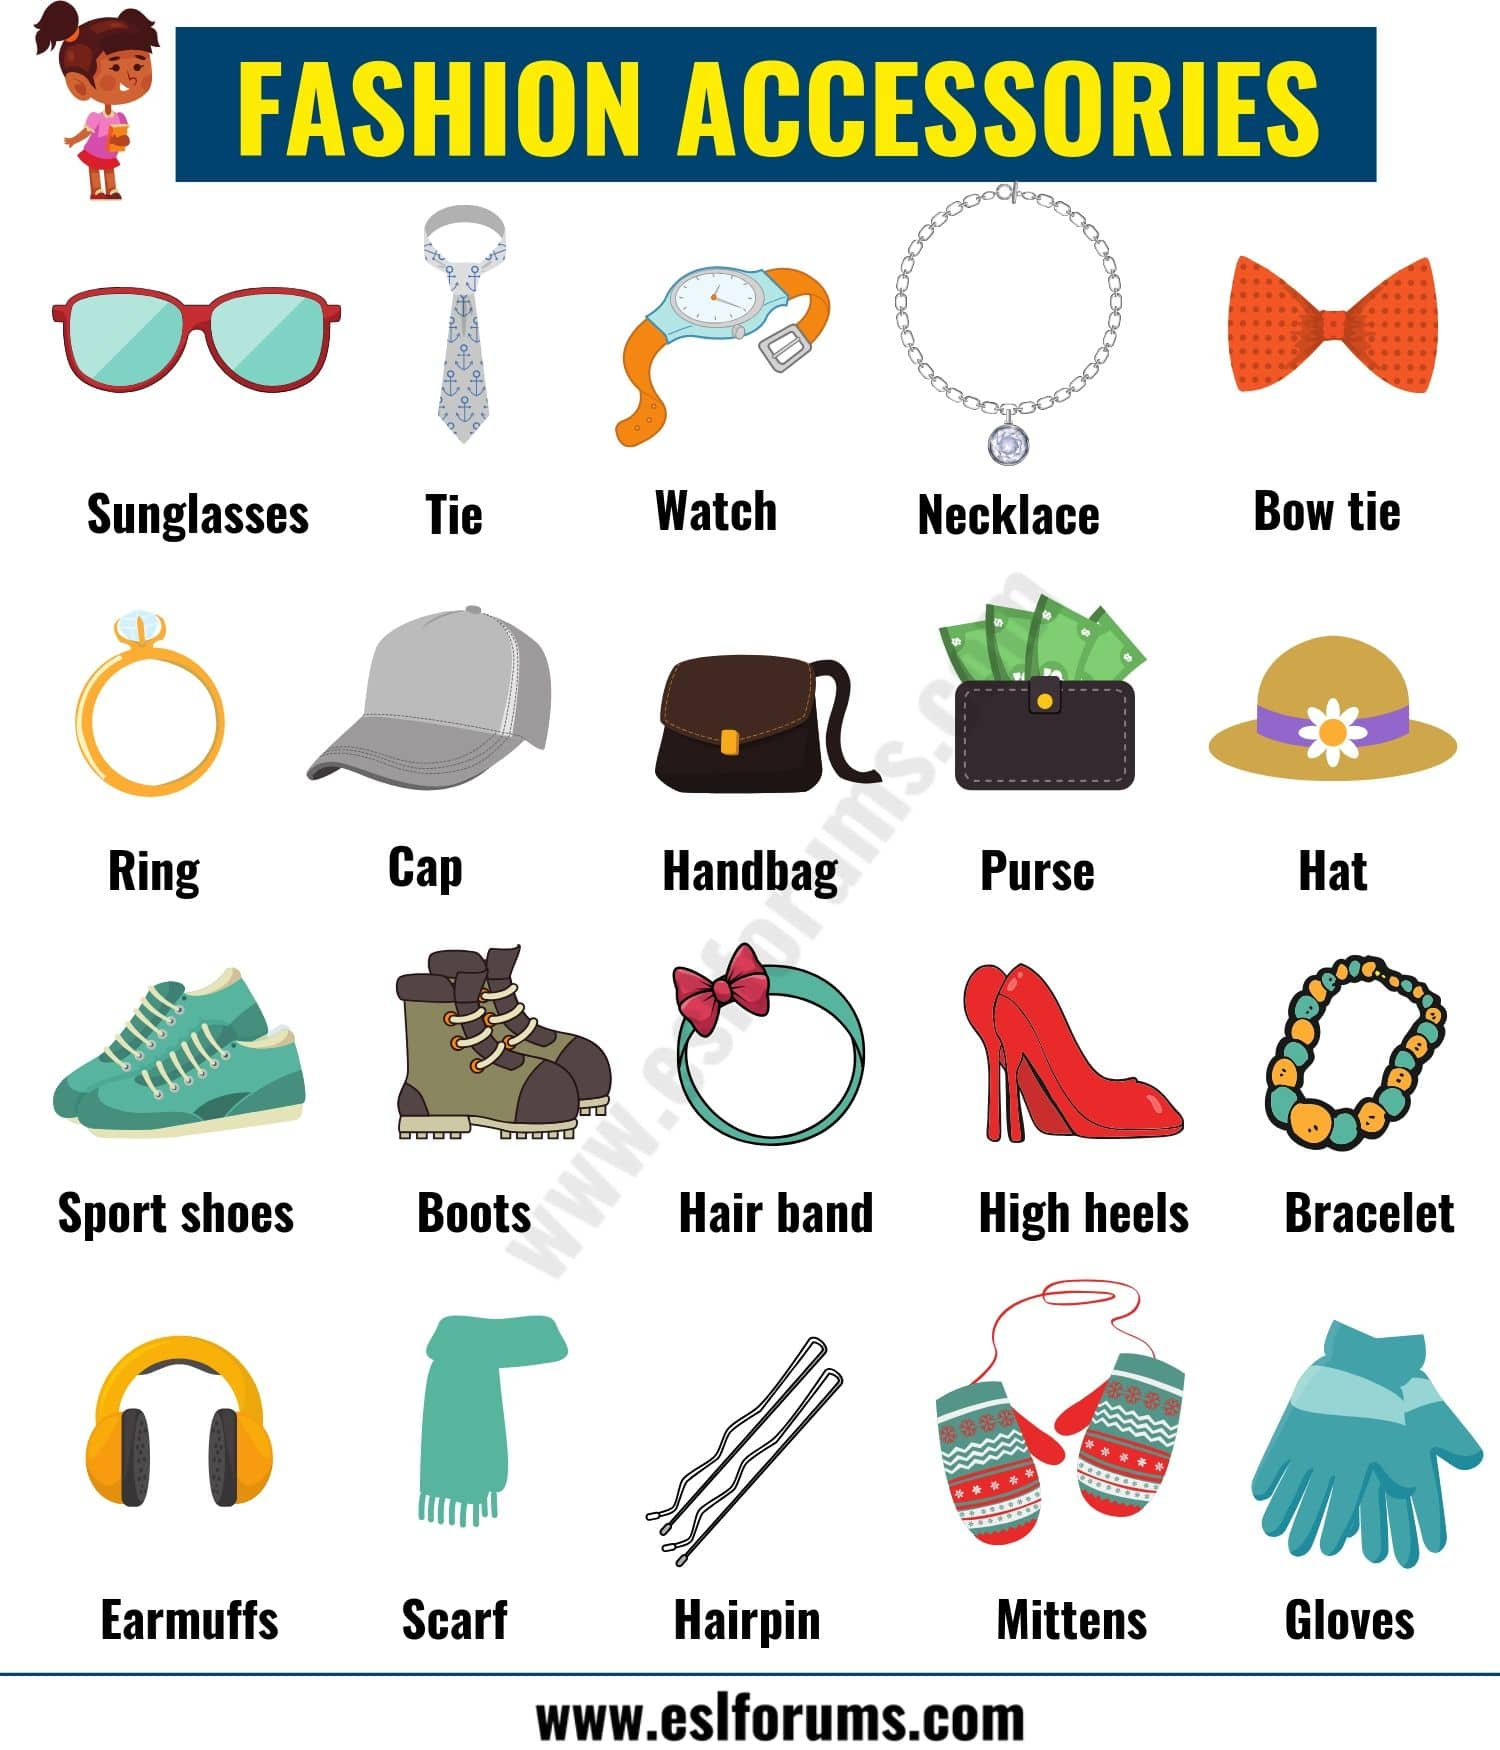 Fashion Accessories List of Accessories for Men and Women